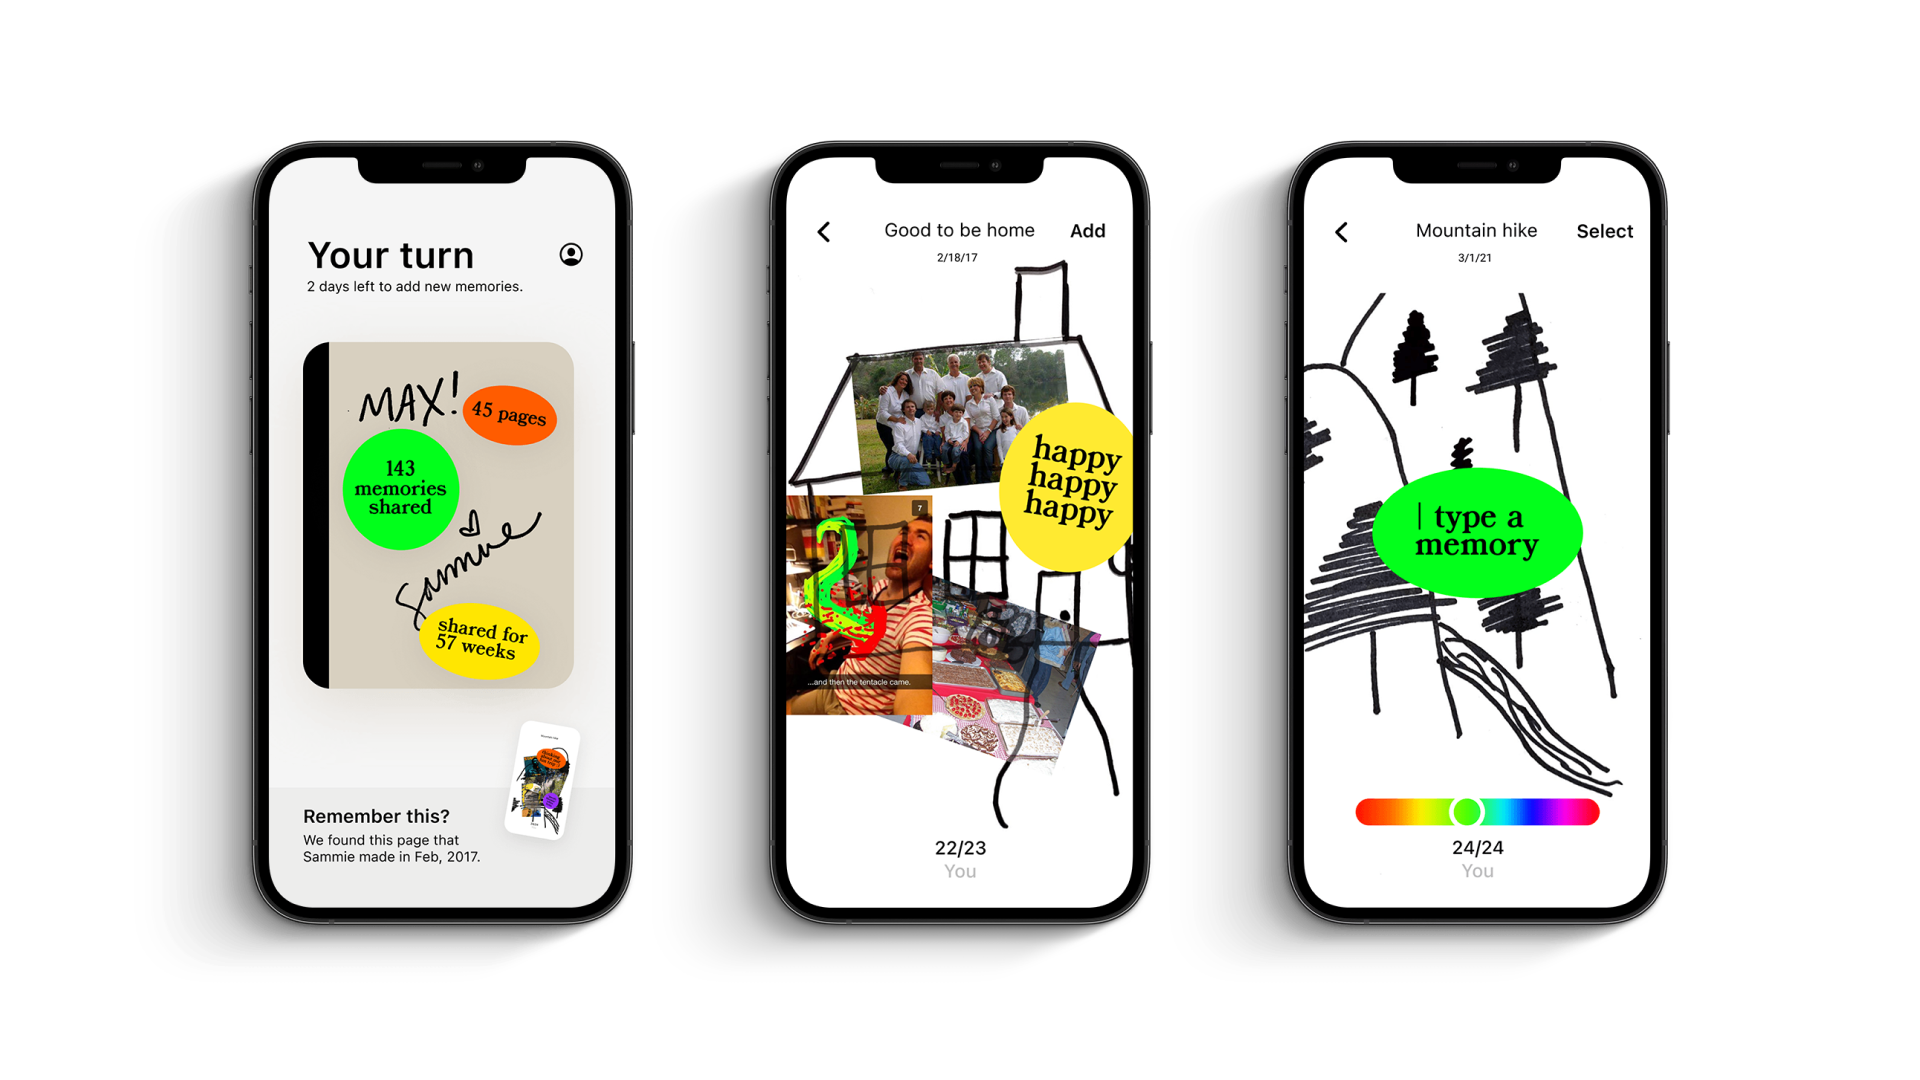 Home, journal and edit phone screens for Spaces app.